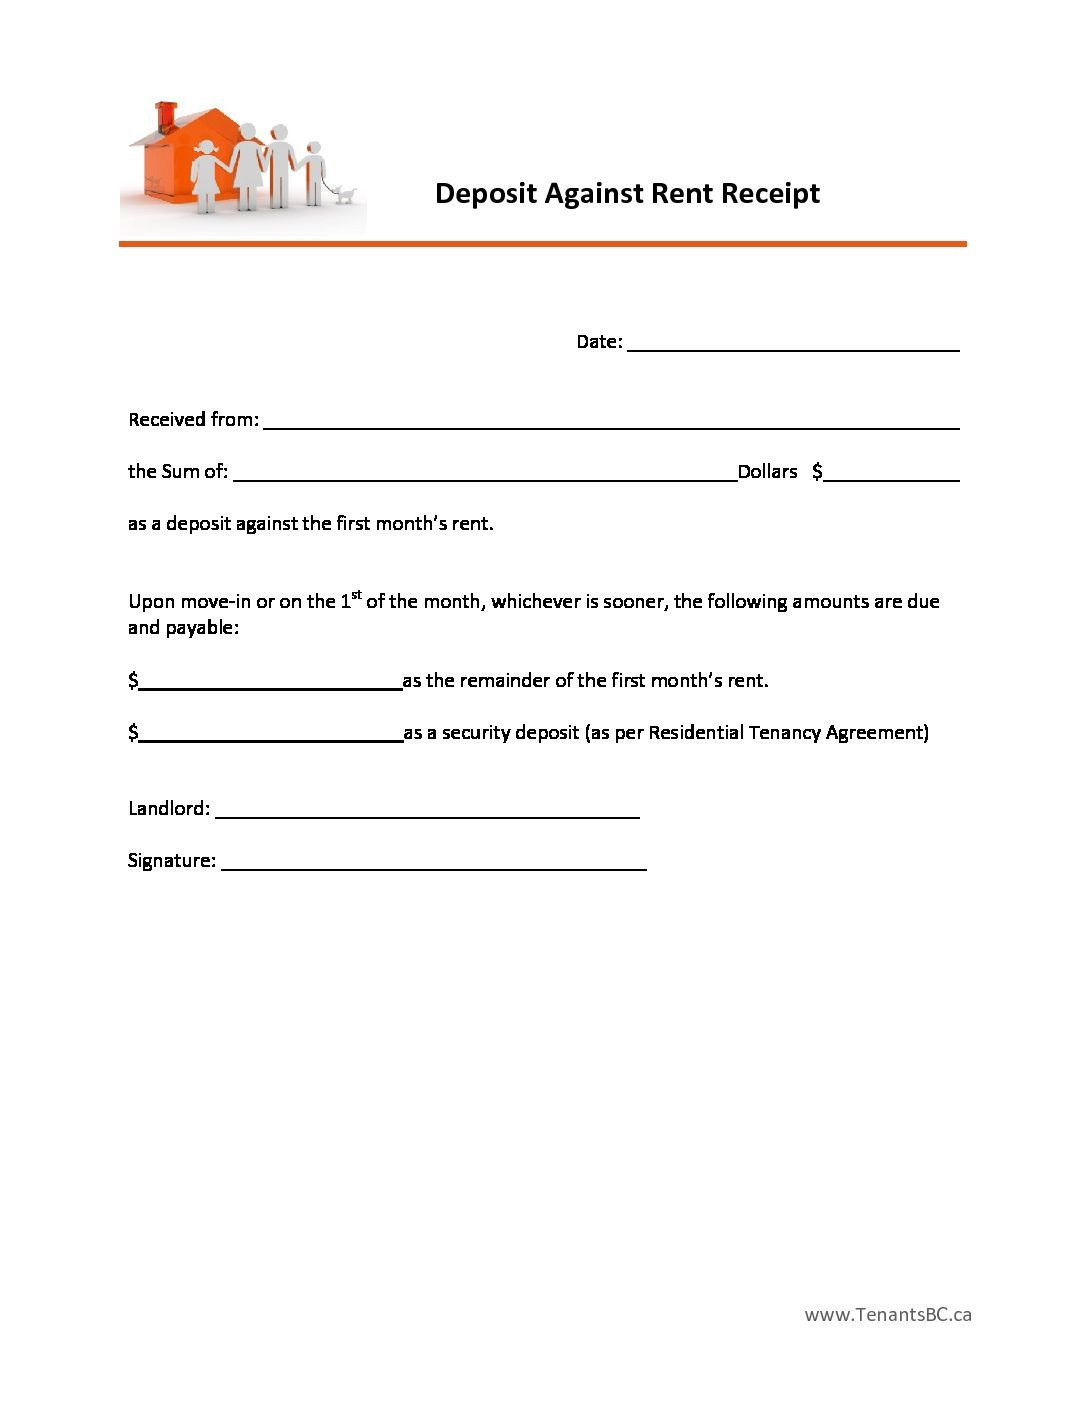 House Rent Receipt Template Impressive Free Rent Receipt Template and What Information to Include